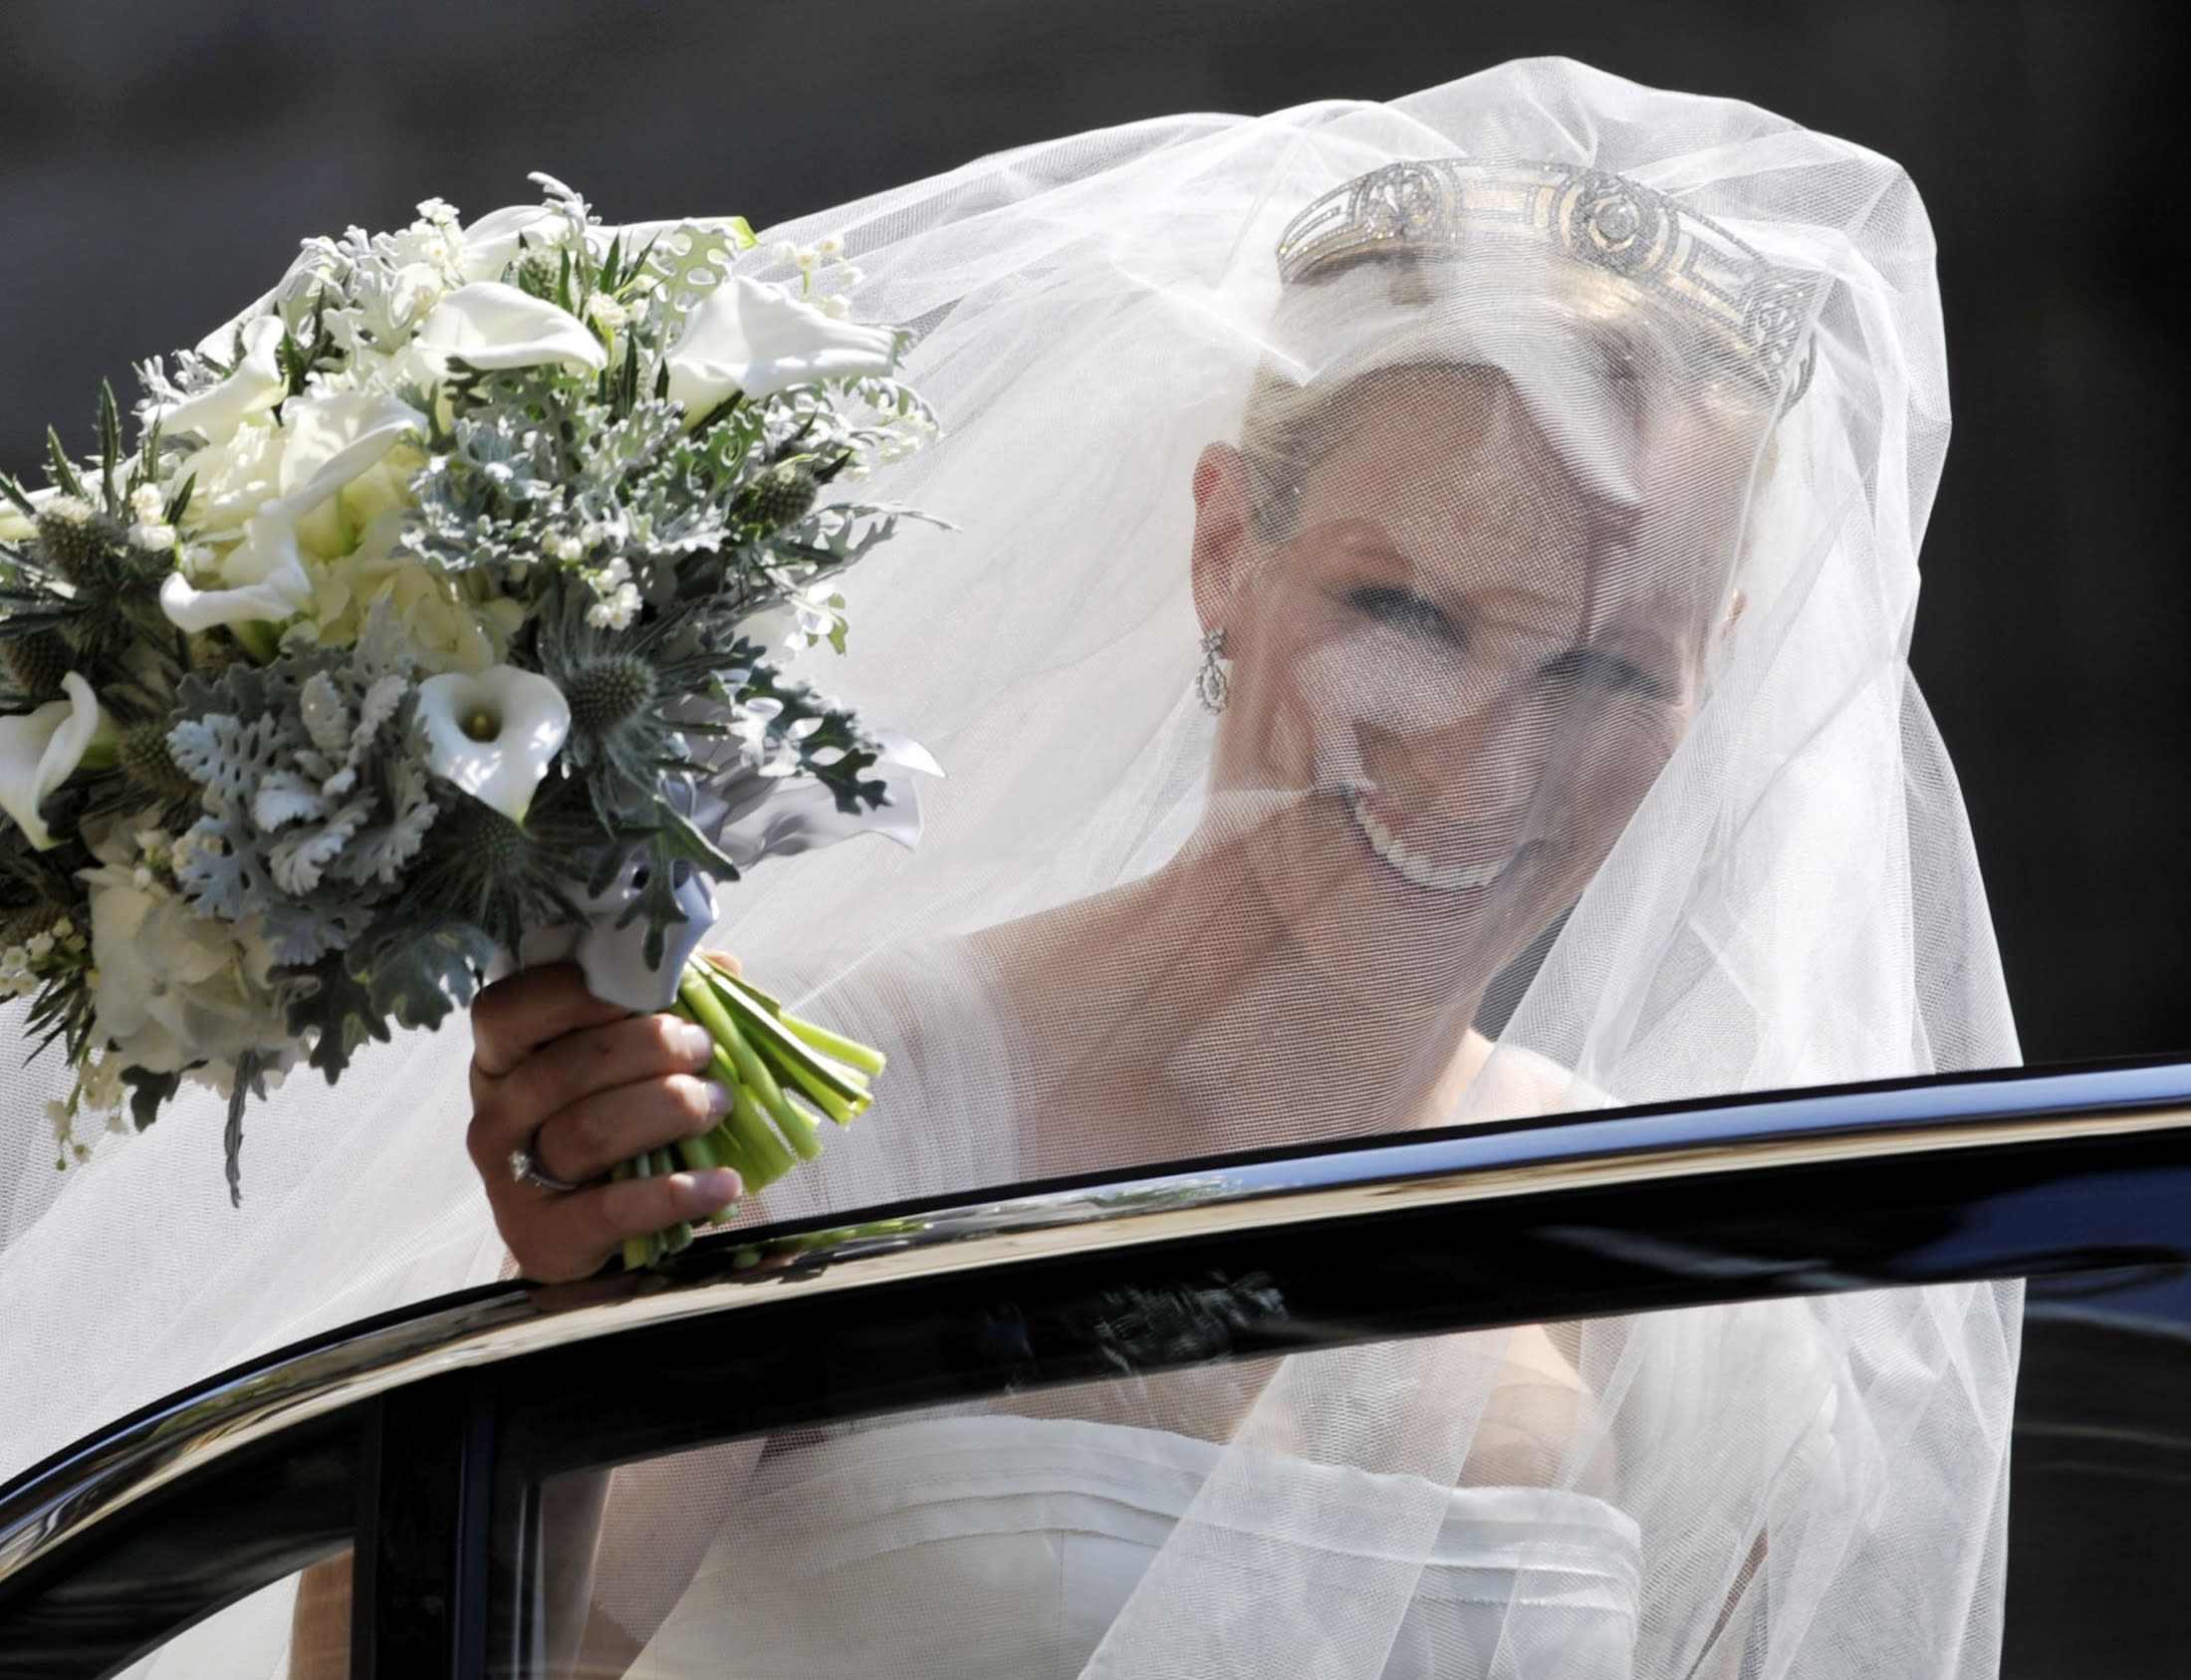 Britain's Zara Philips, the eldest granddaughter of Queen Elizabeth, arrives back at Holyrood Palace after her marriage to England rugby captain Mike Tindall, at Canongate Kirk in Edinburgh, Scotland July 30, 2011.   REUTERS/Phil Wilkinson/Pool       (BRITAIN - Tags: ENTERTAINMENT SOCIETY ROYALS SPORT)